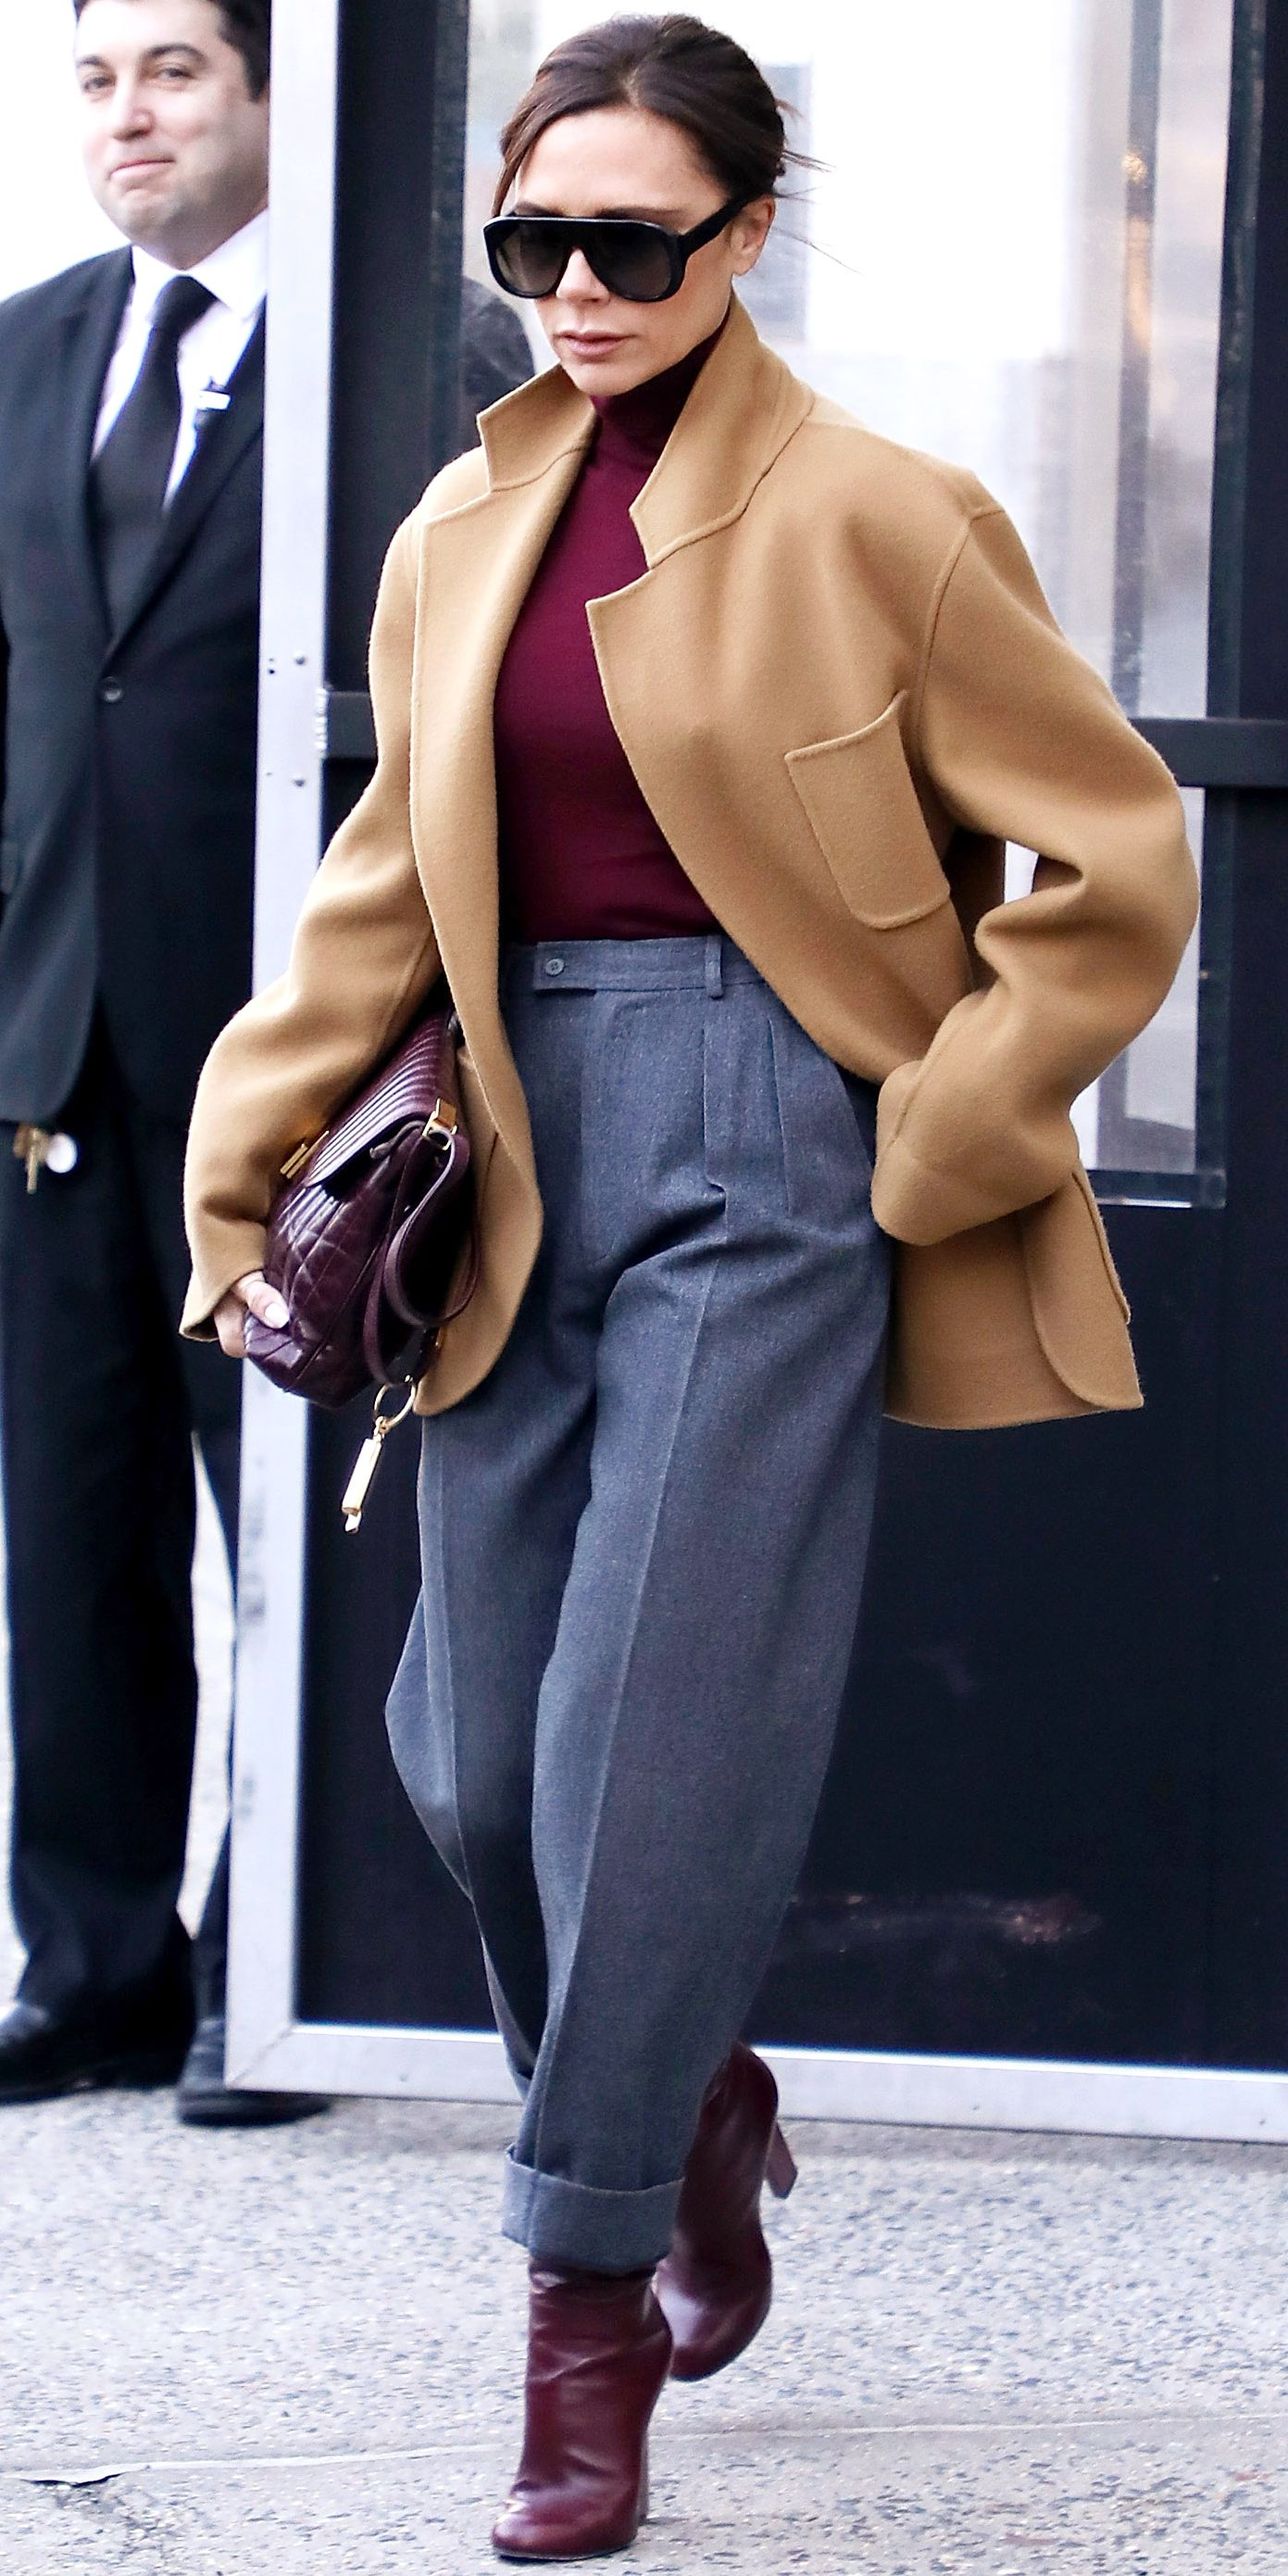 81676f76e7 Look of the Day - Victoria Beckham from InStyle.com Victoria Beckham  stepped out looking polished in a camel coat ( 2